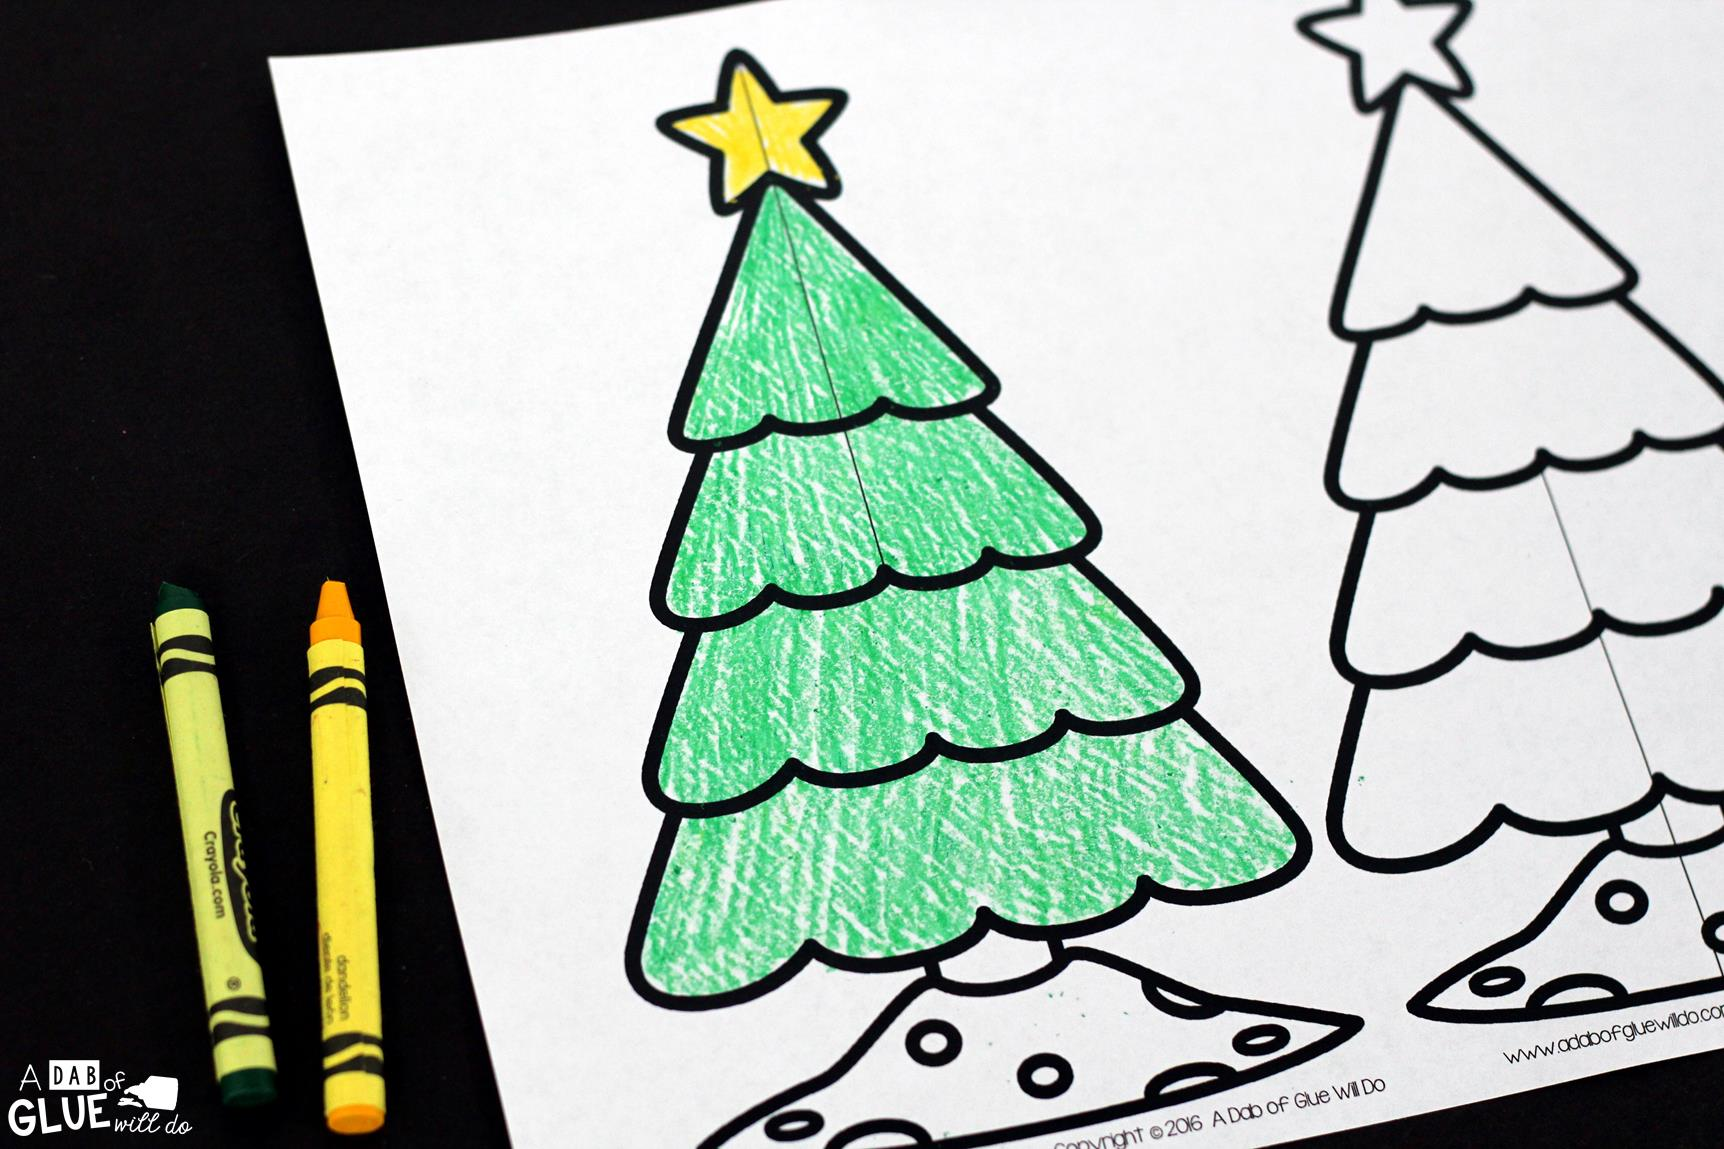 Why do we have christmas decorations on a tree - First You Will Want To Have Your Students Color Their Christmas Trees Of Course We Focus On Green Trees In General But Let Your Students Color Whatever